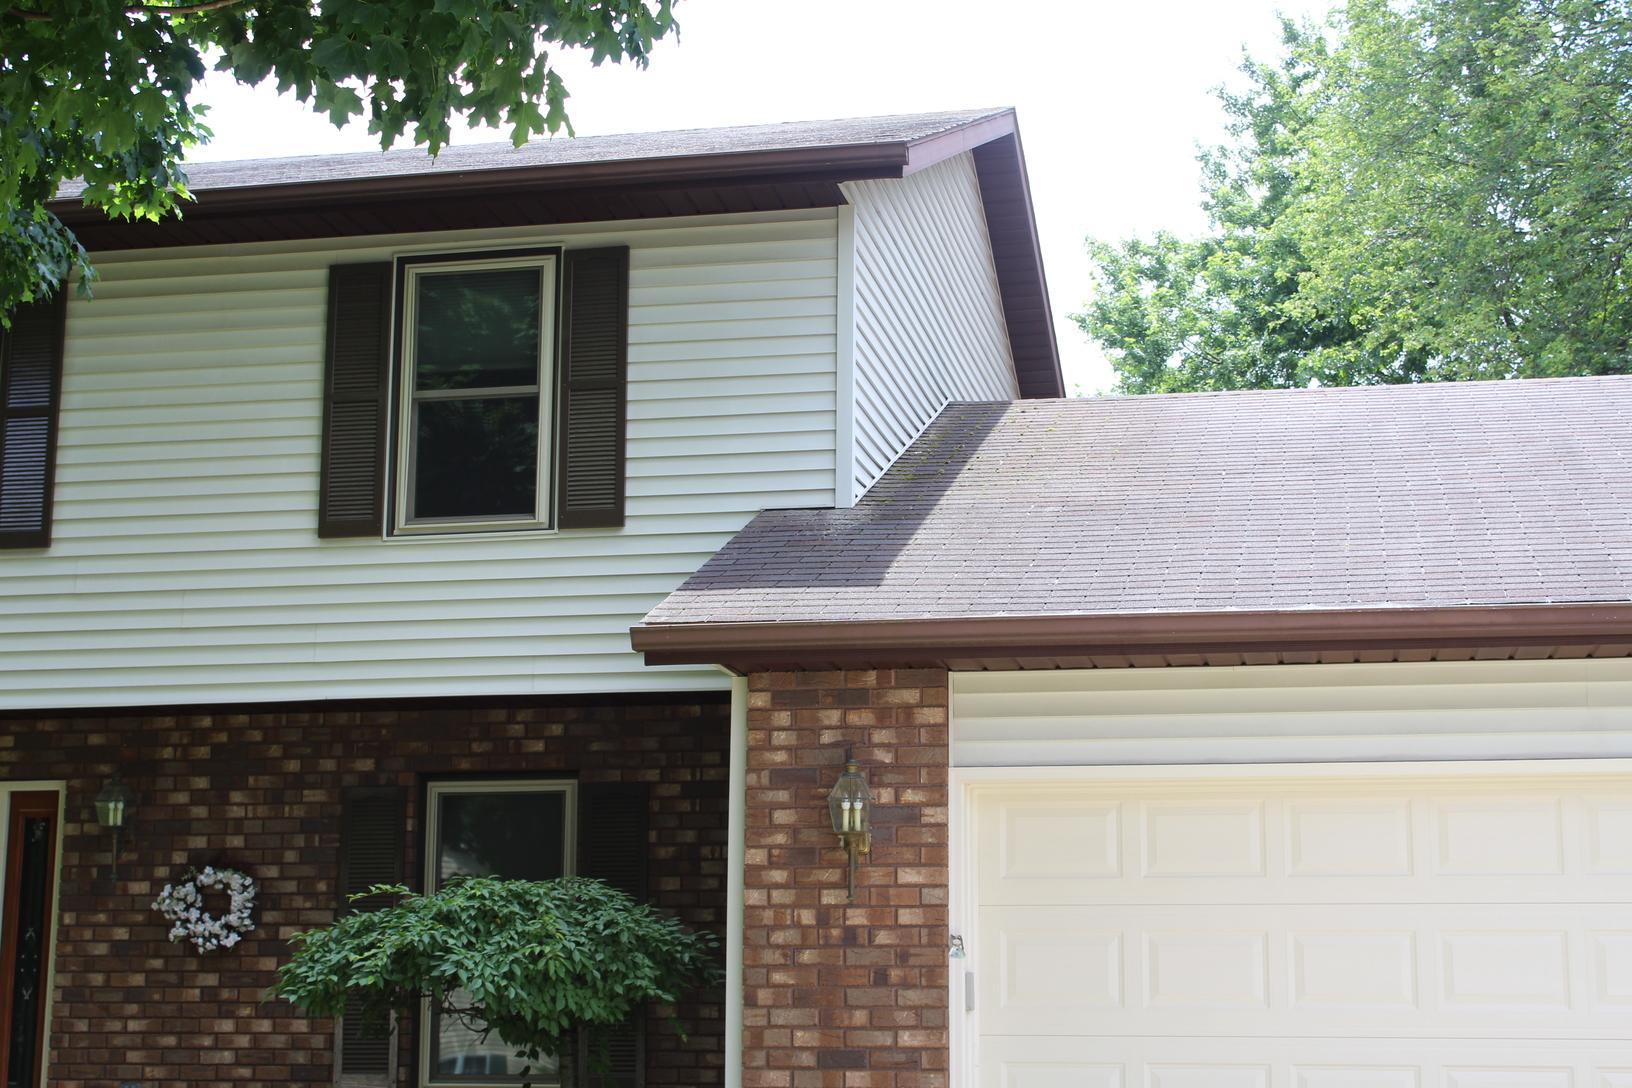 Roof Replacement Portage Michigan - Before Photo